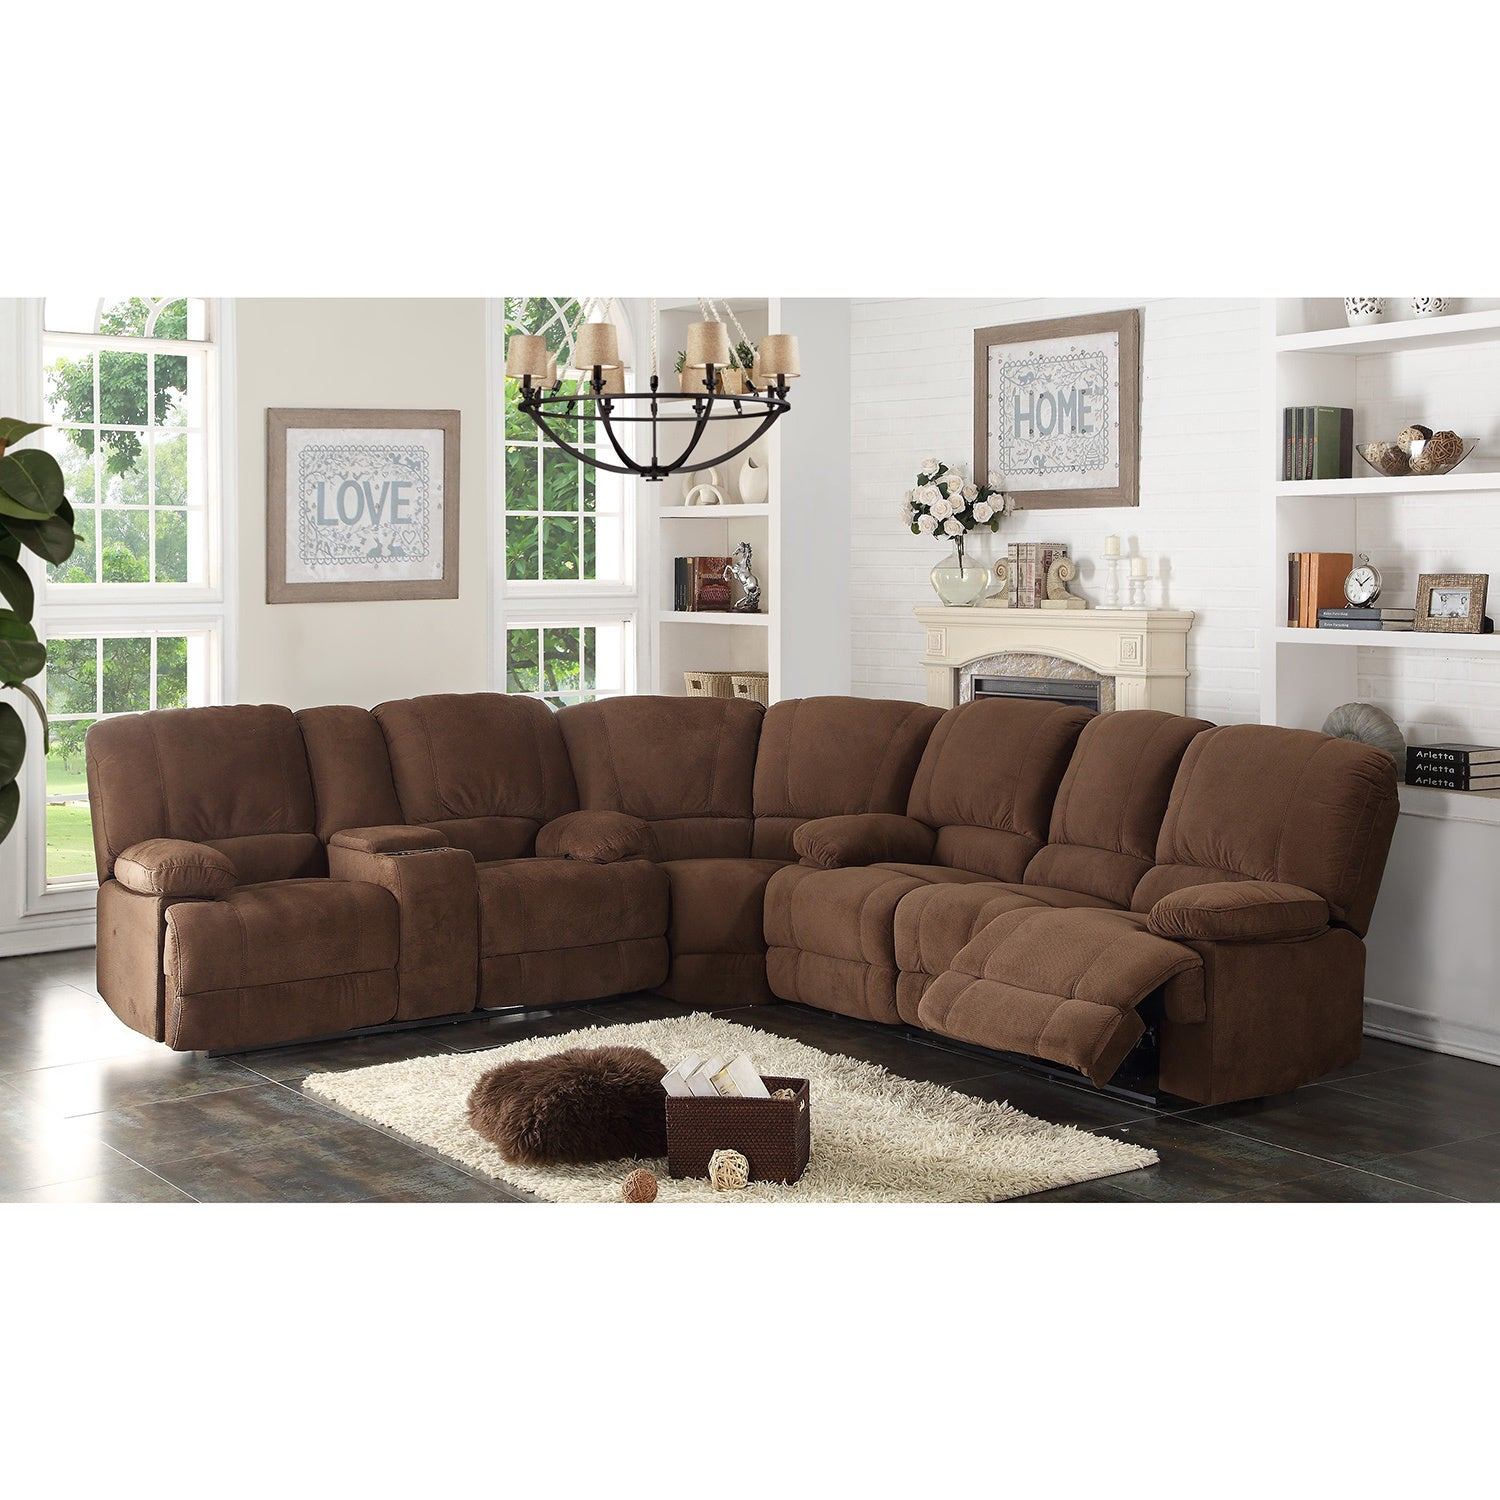 Kevin Sectional Transitional Sofa Loveseat Wedge 3 Piece Set  ~ How To Measure A Sectional Sofa With Wedge